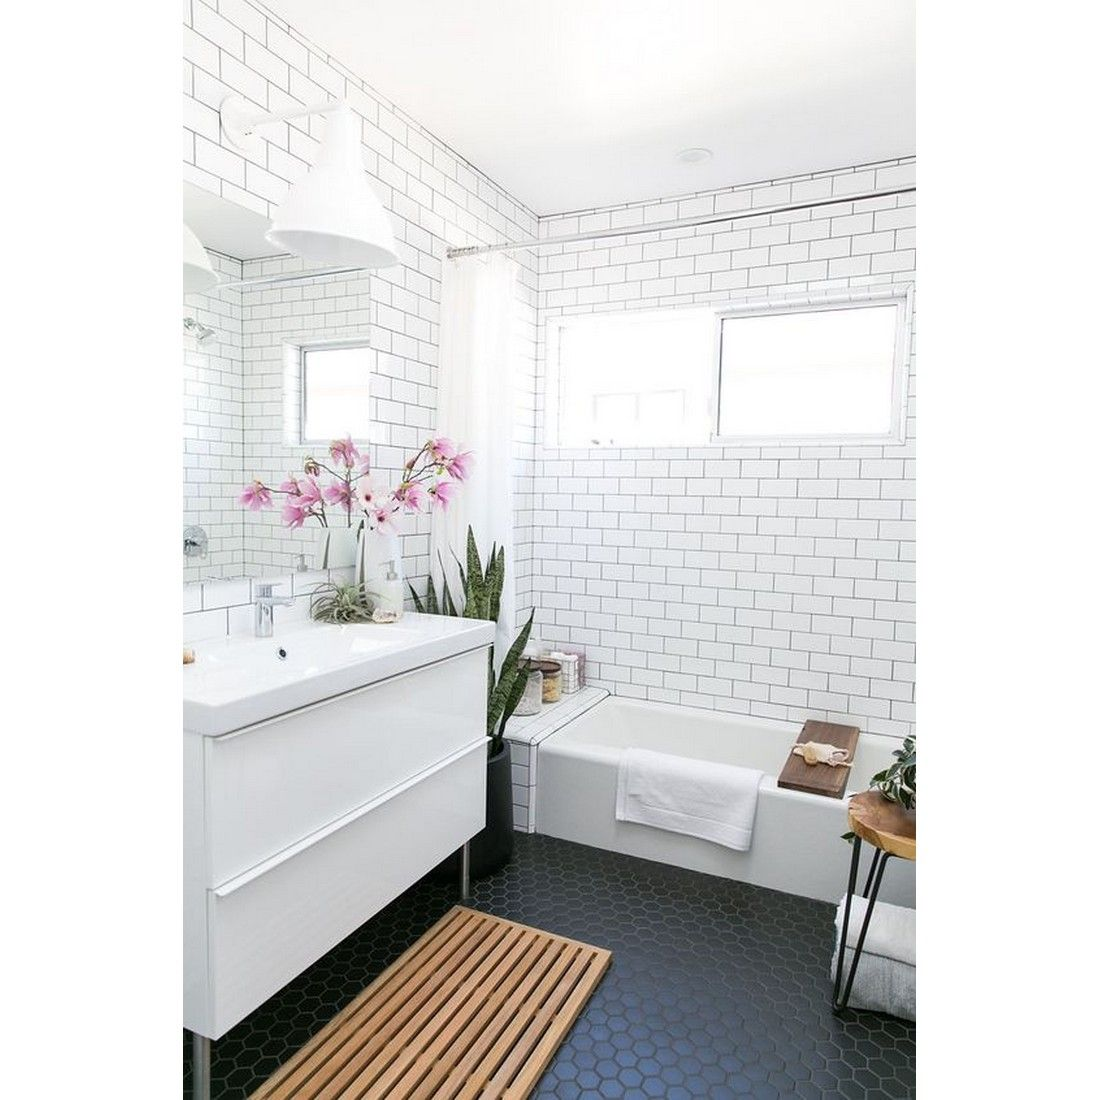 All white bathroom with black penny tiles for monochrome look ...